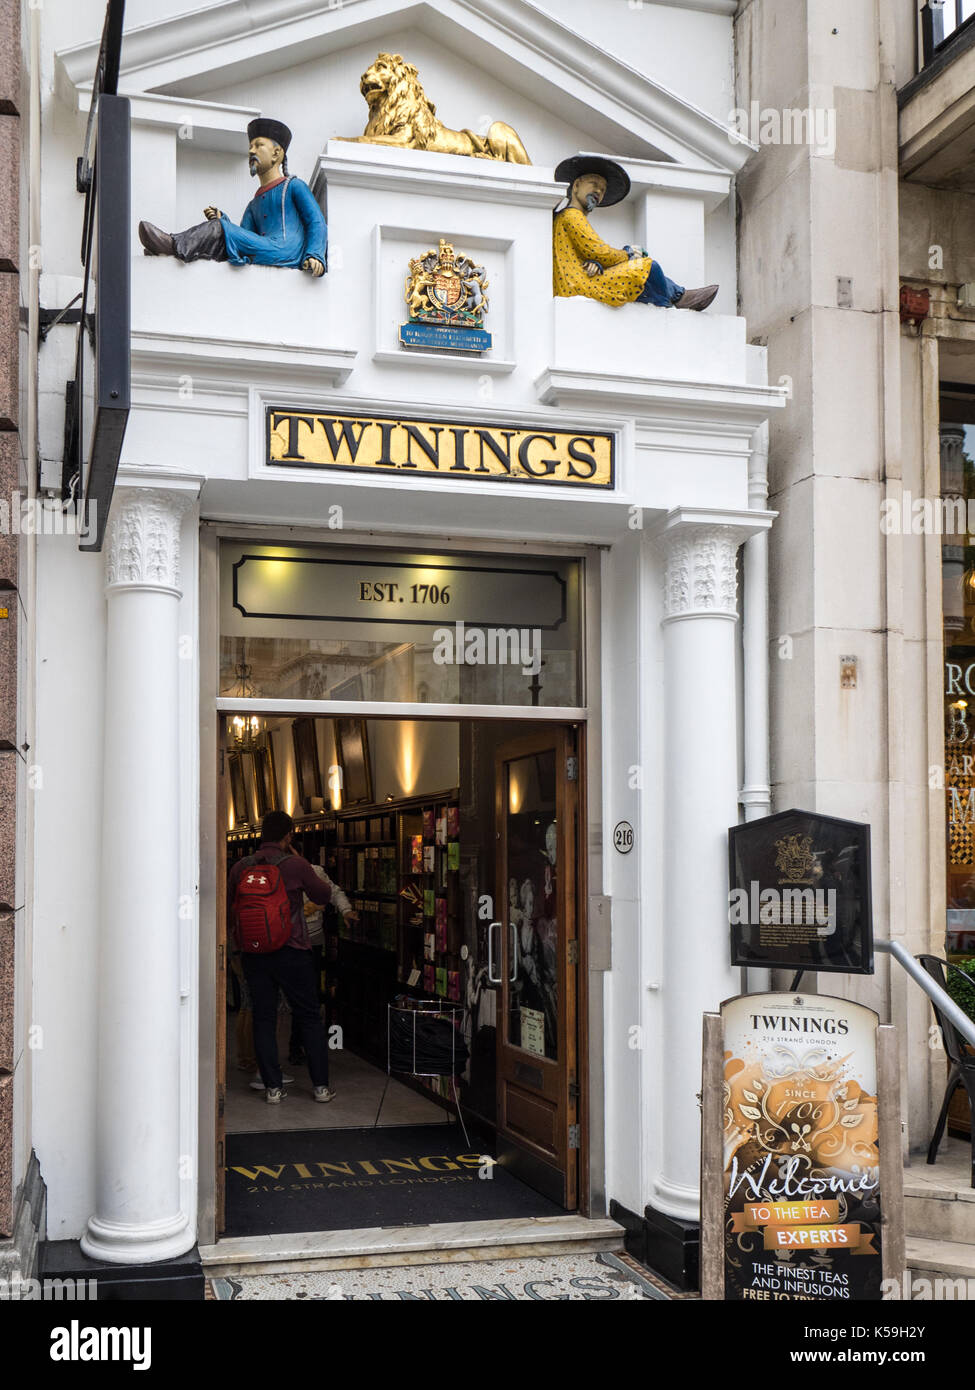 Twinings Tea historic tea store at 216 The Strand London - The oldest tea shop in London at over 300 years old - Stock Image